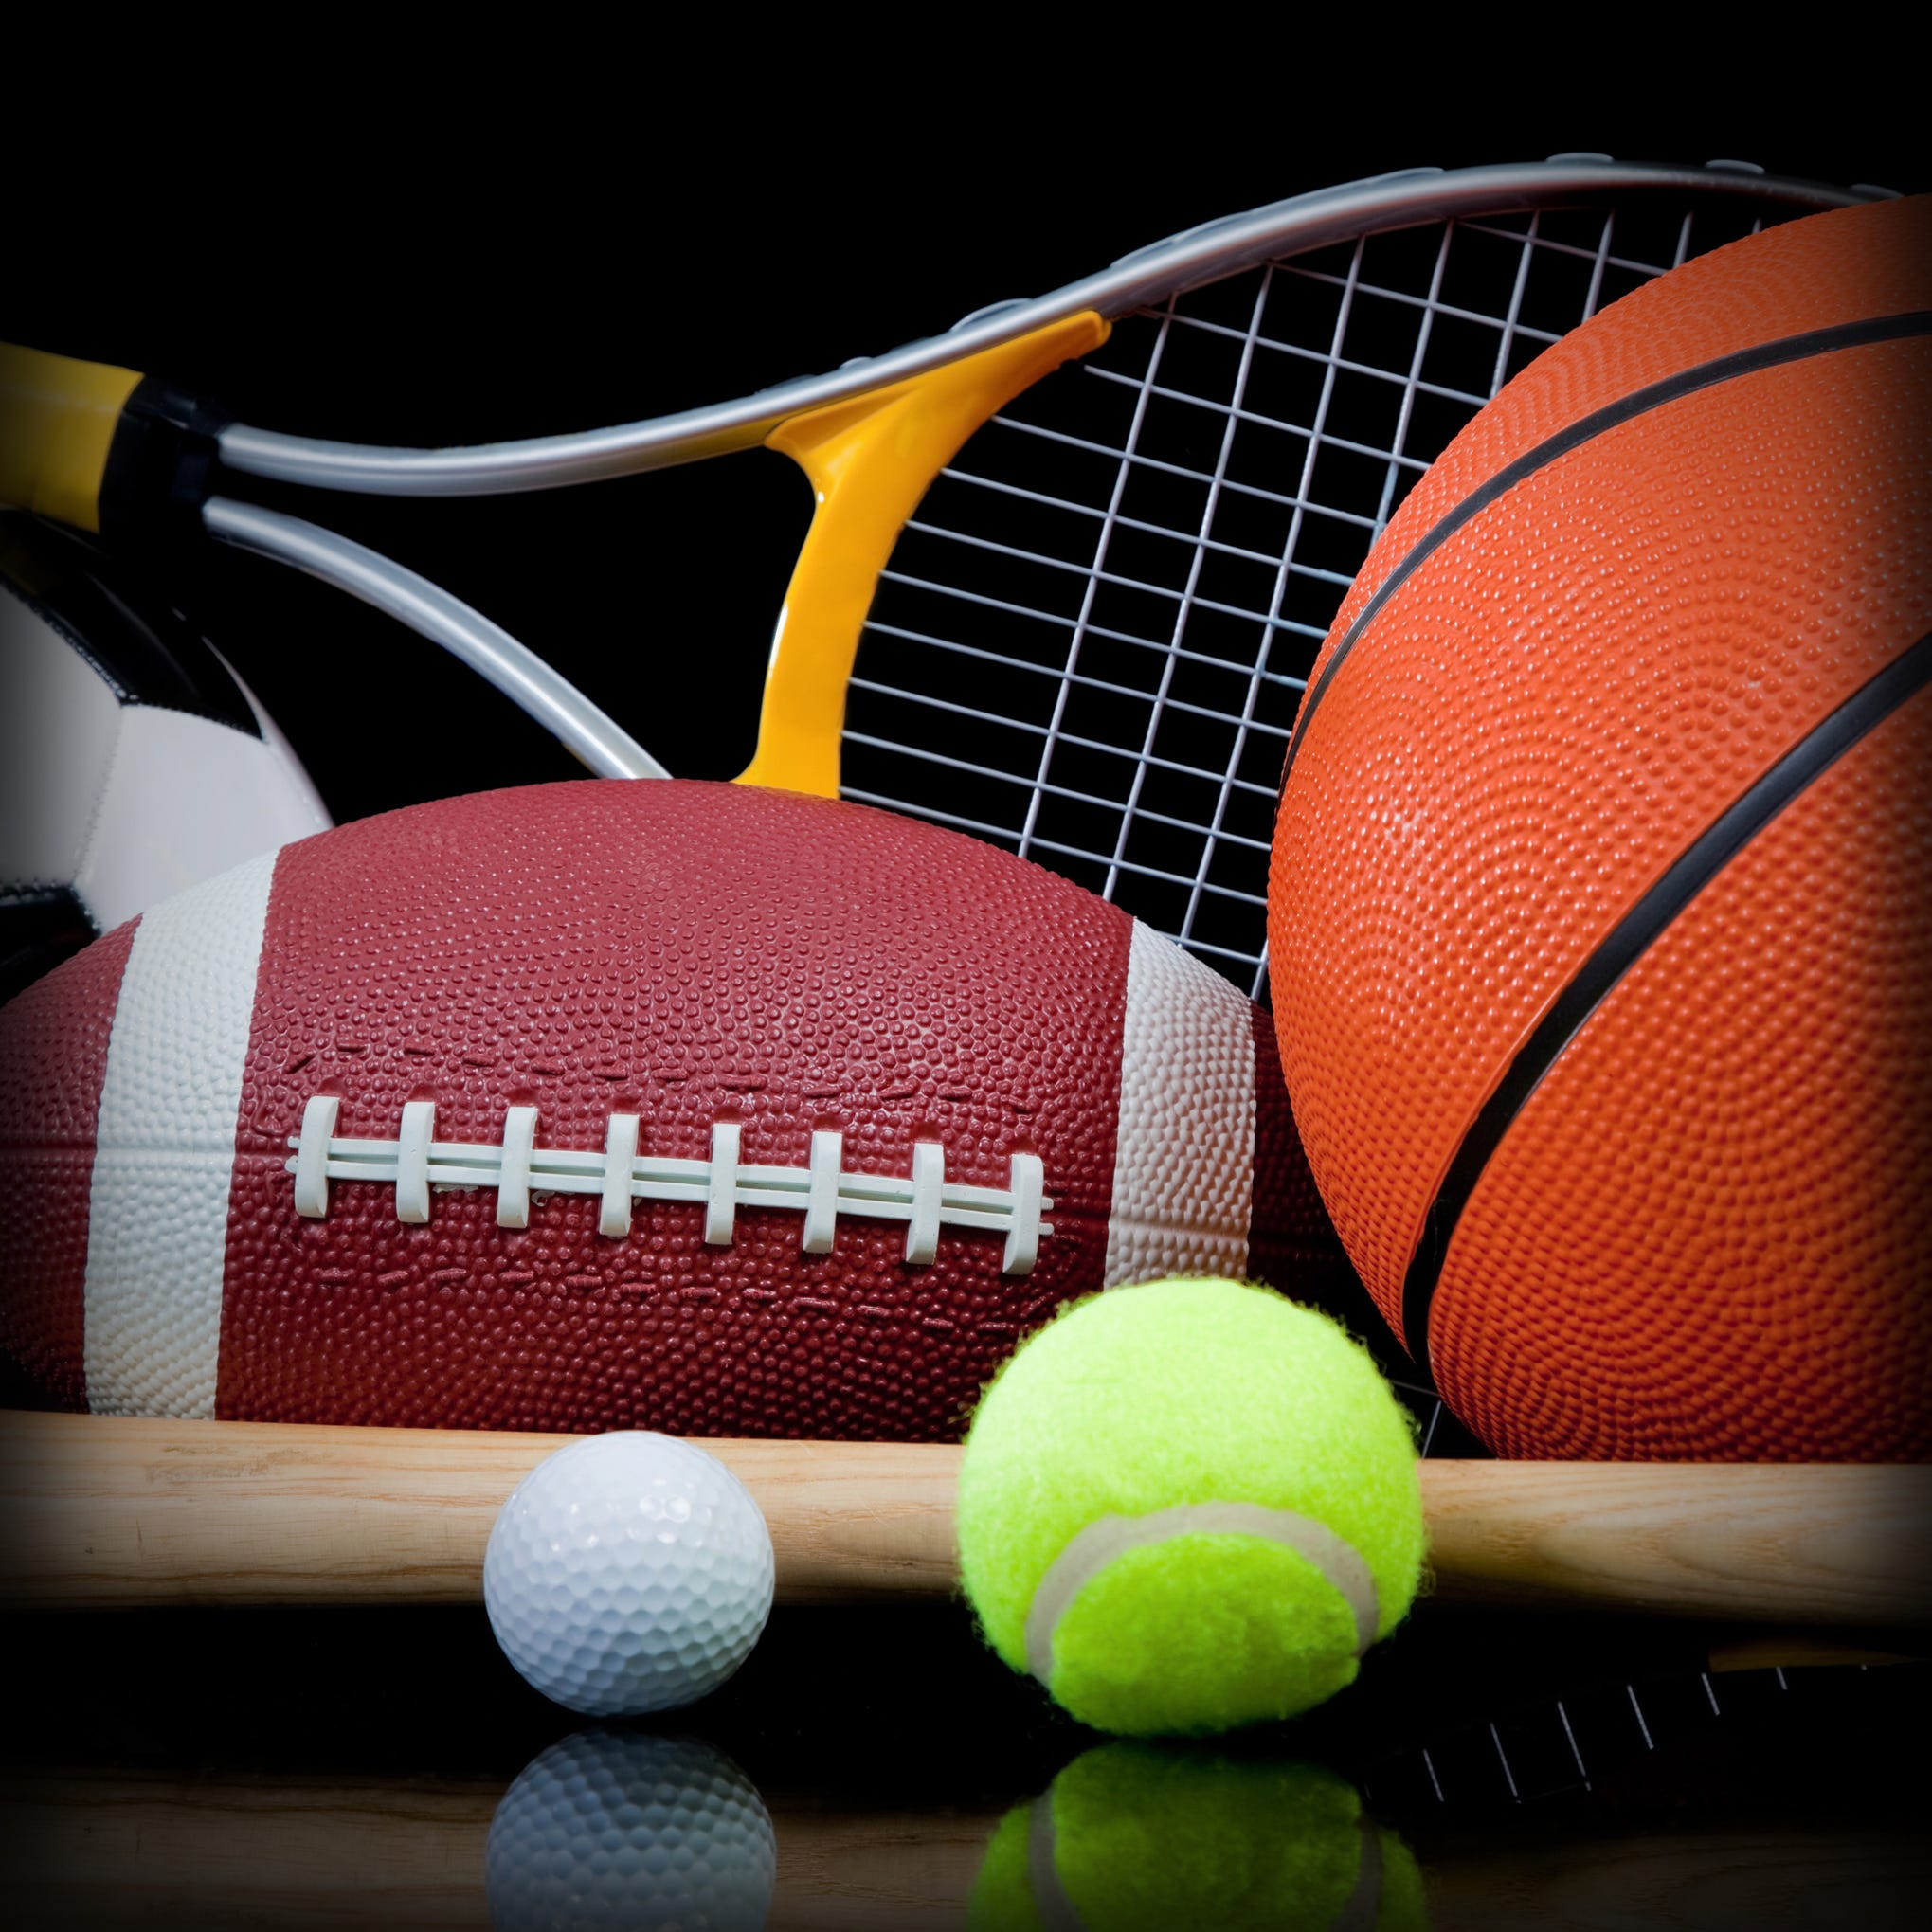 HS Roundup: Kuhns scores career-high 39 in OT loss